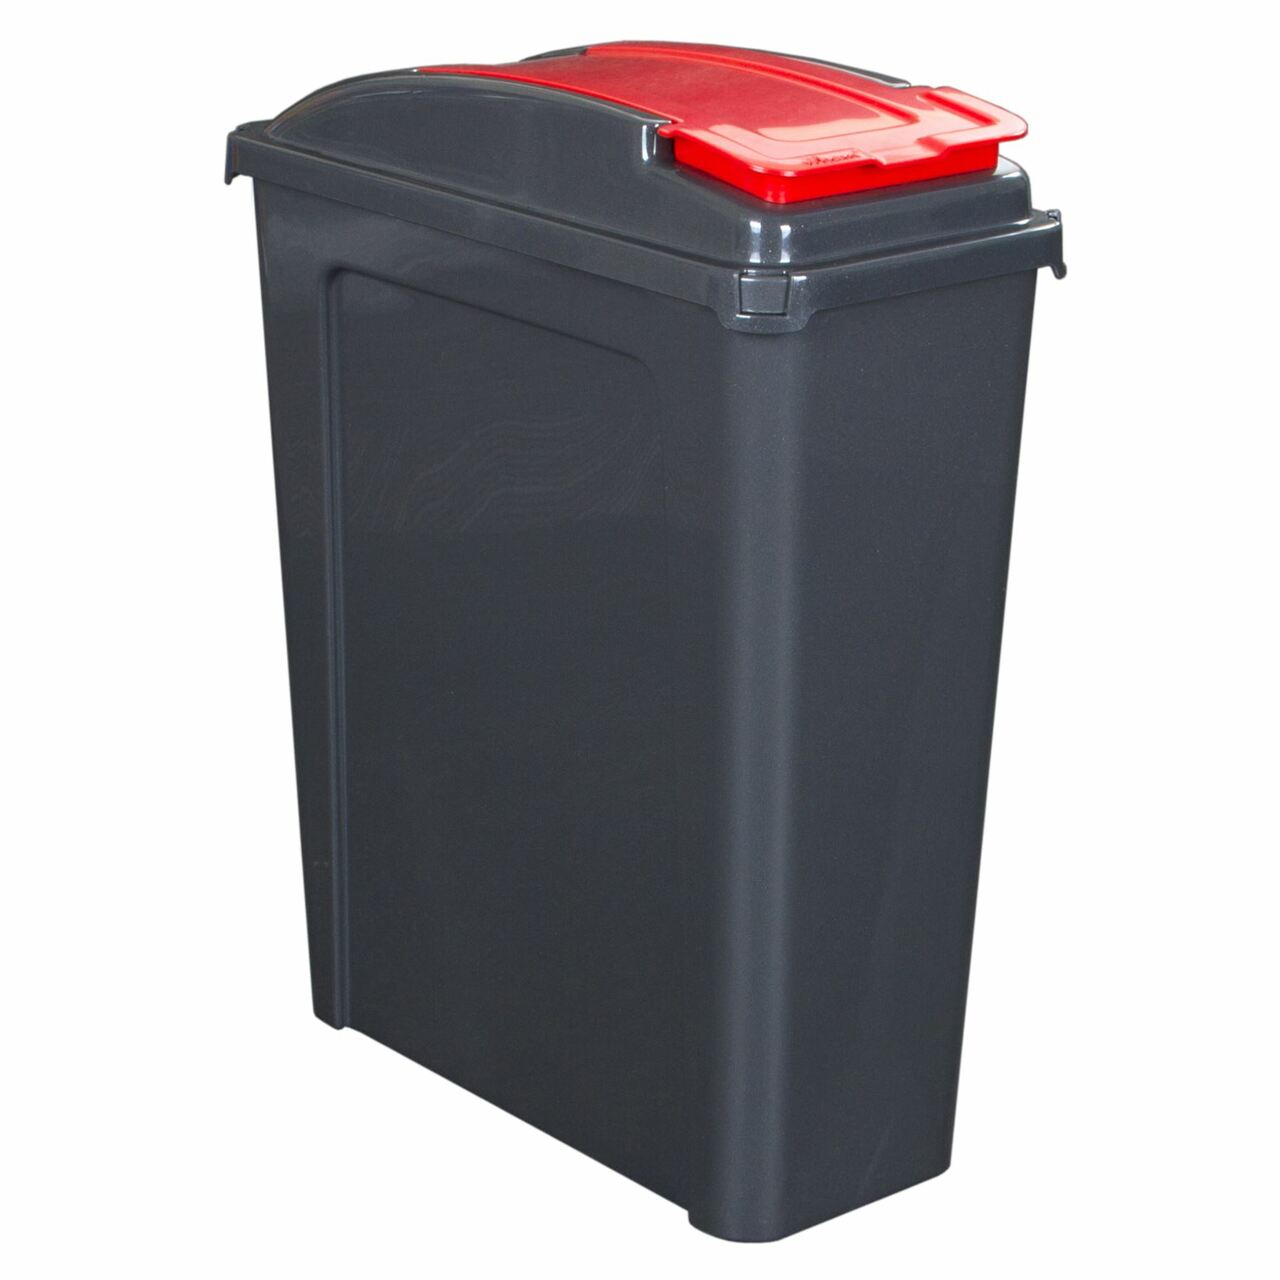 Wham 25 Litre Recycling / Pet Food Storage Bin - Red & Graphite, Pet Food Containers by Dog In A Box